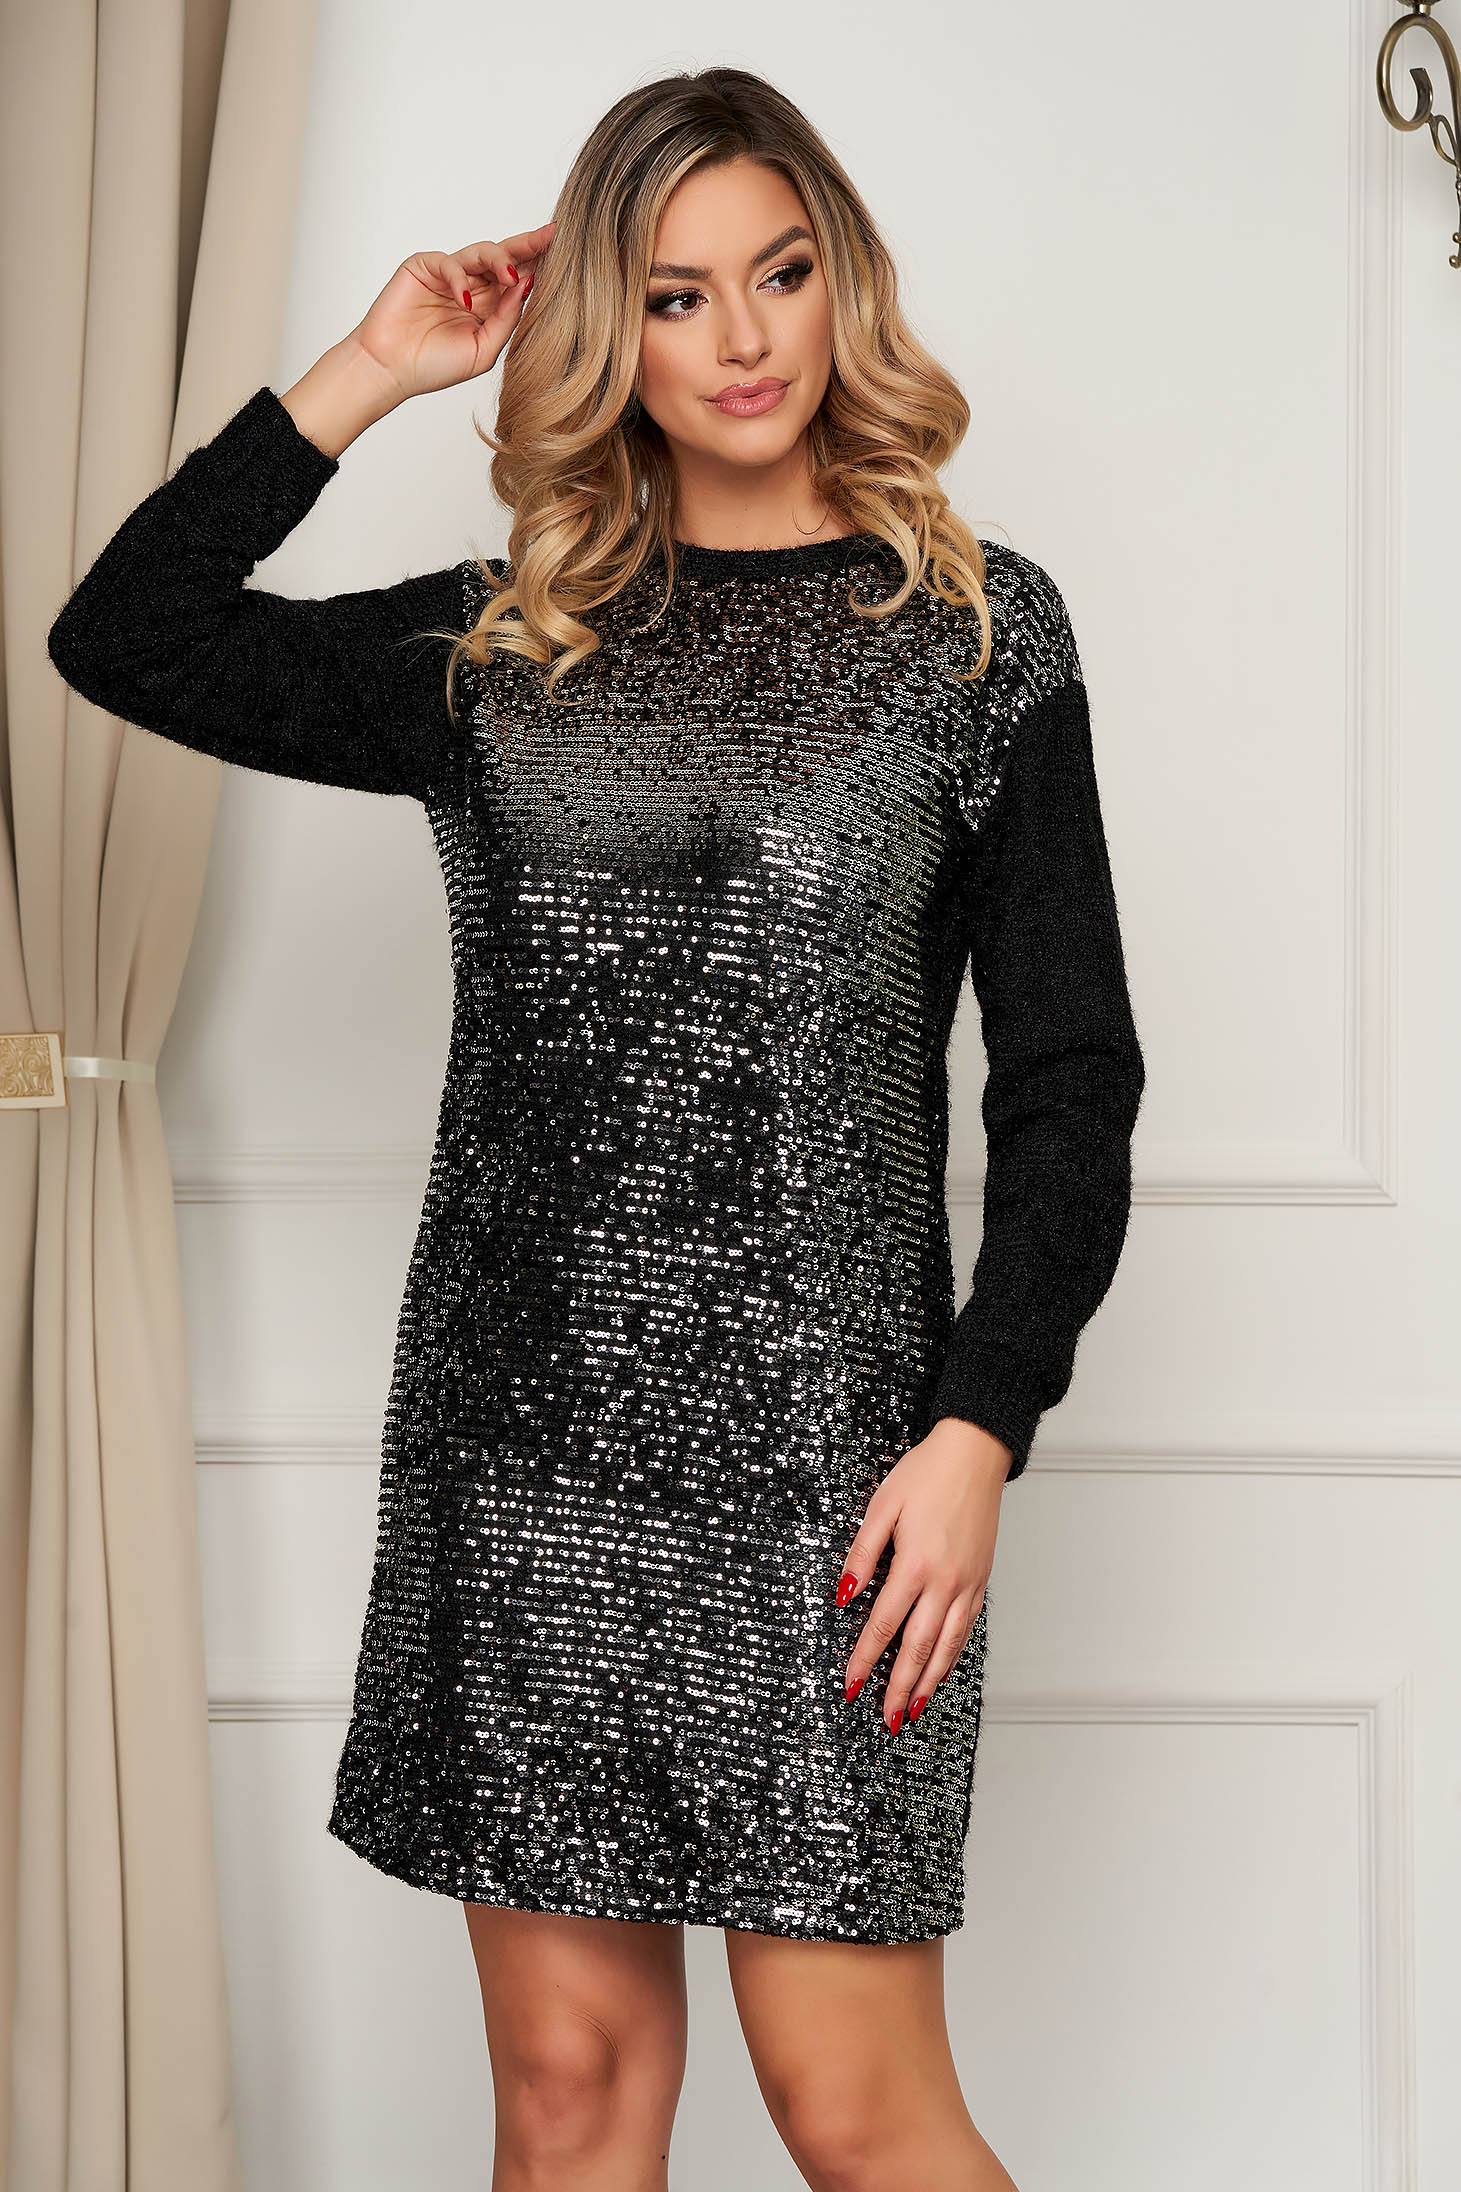 Clubbing short cut from elastic fabric with sequin embellished details silver dress